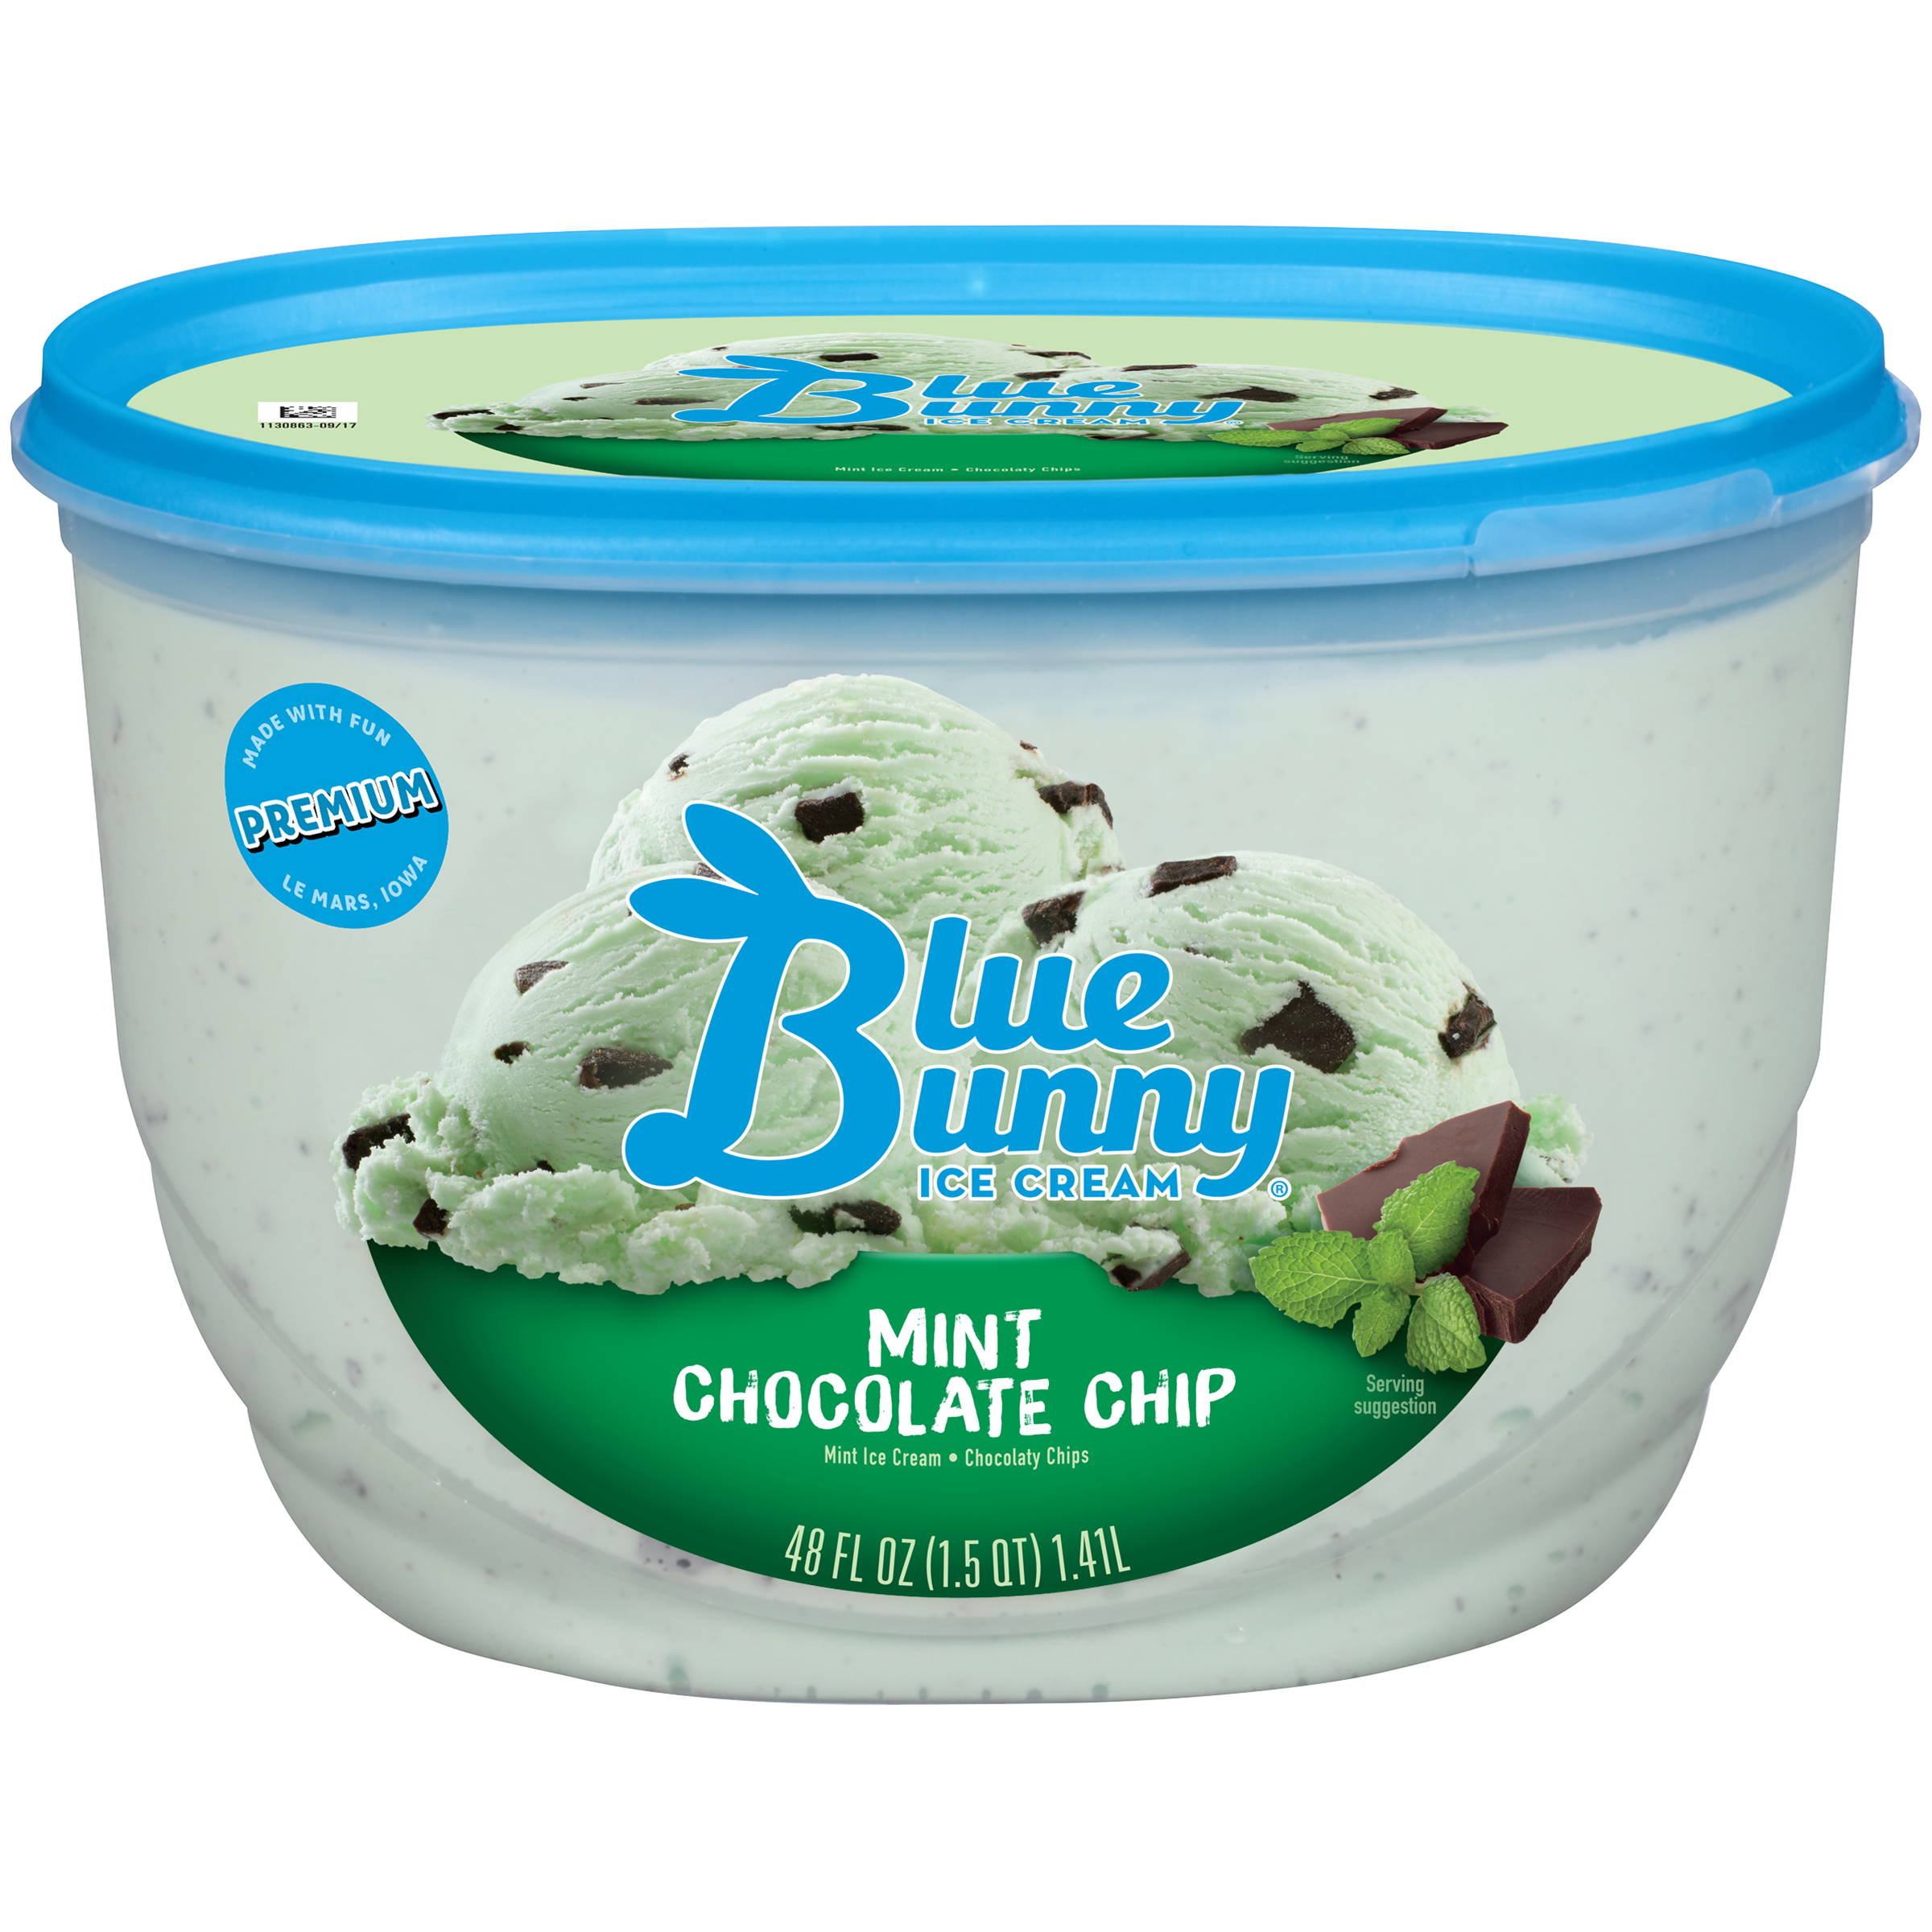 Blue Bunny Mint Chocolate Chip Ice Cream, 48 fl oz